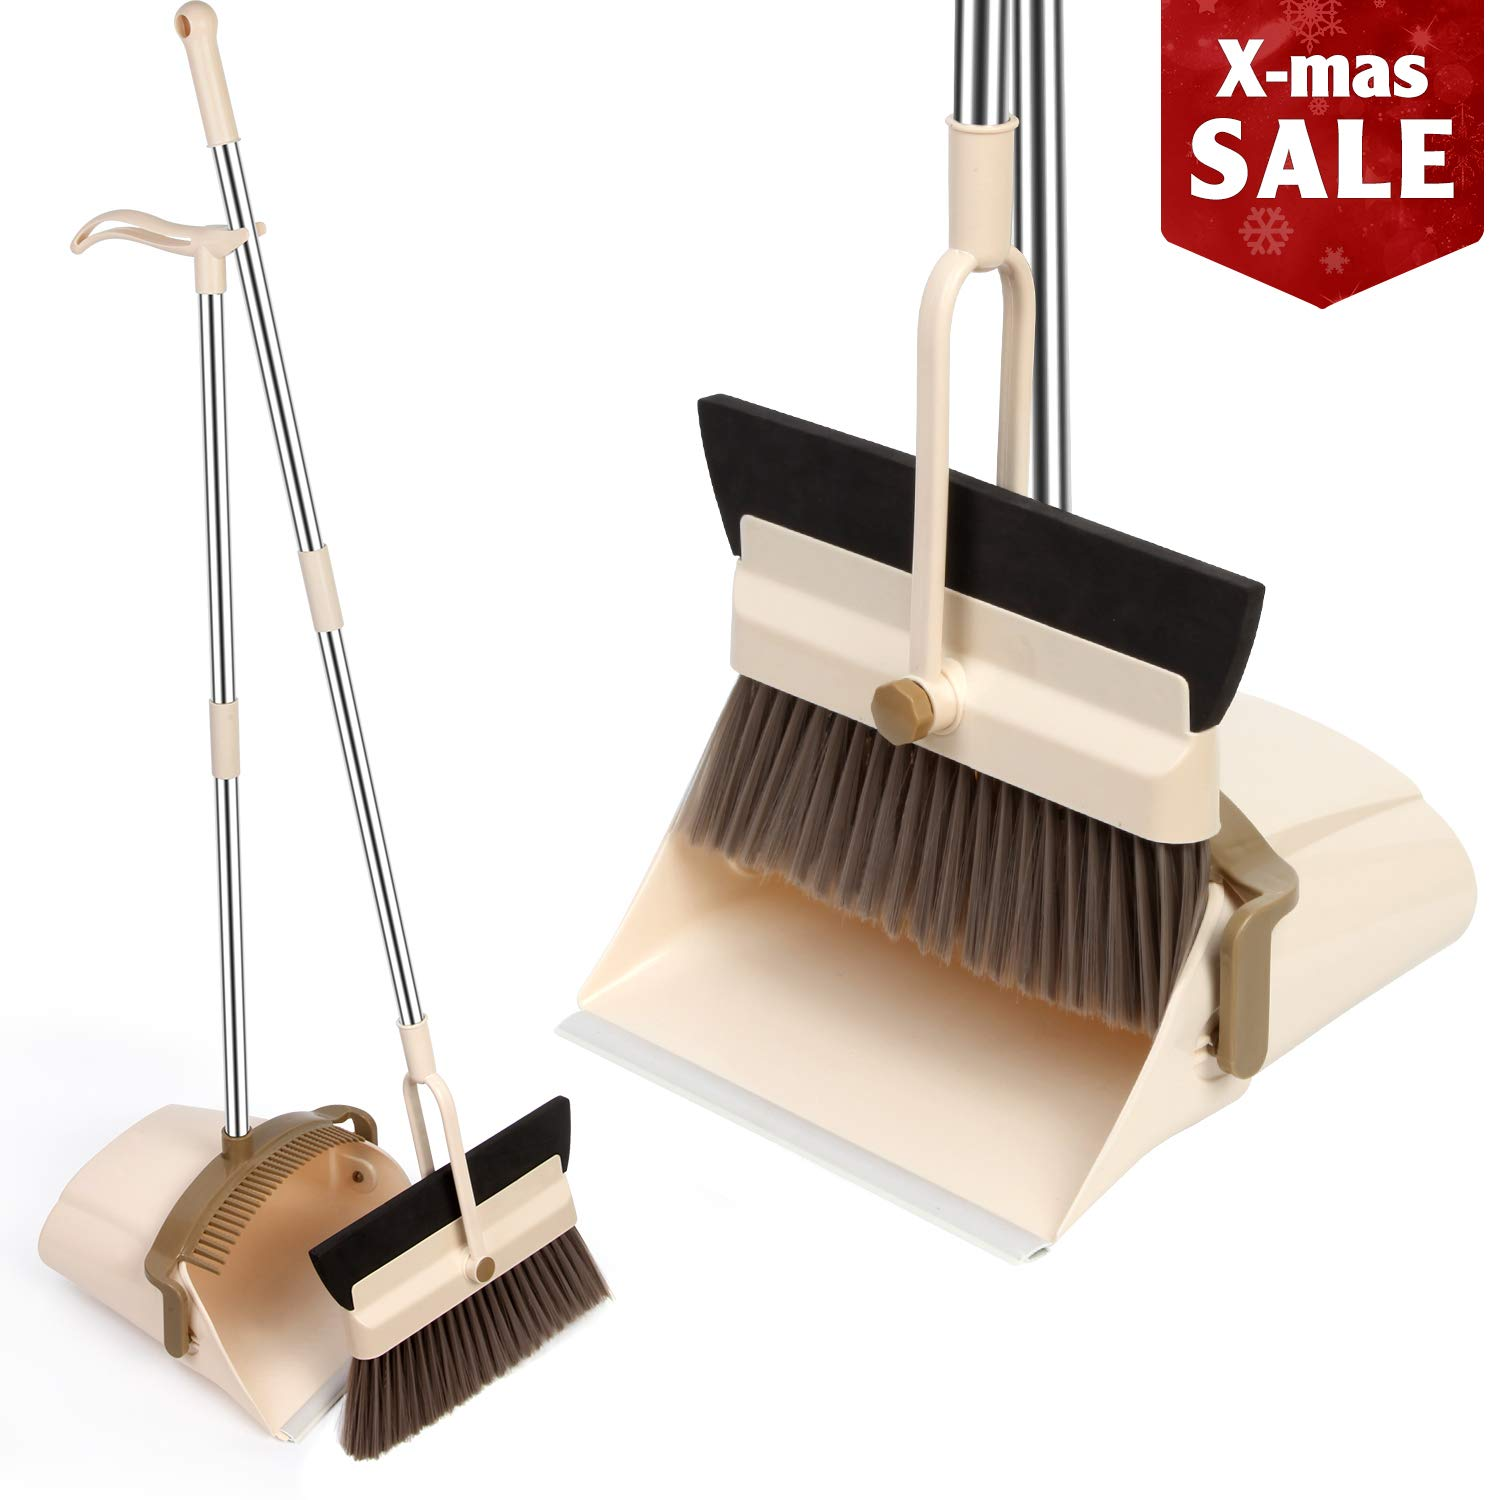 MOCREO Dustpan and Broom and Floor Squeegee Set, Dustpan Cleans Broom Combo with Long Handle For Home Kitchen Room/Office/Lobby Floor, Use Upright Stand Up Dustpan Broom & Squeegee Set